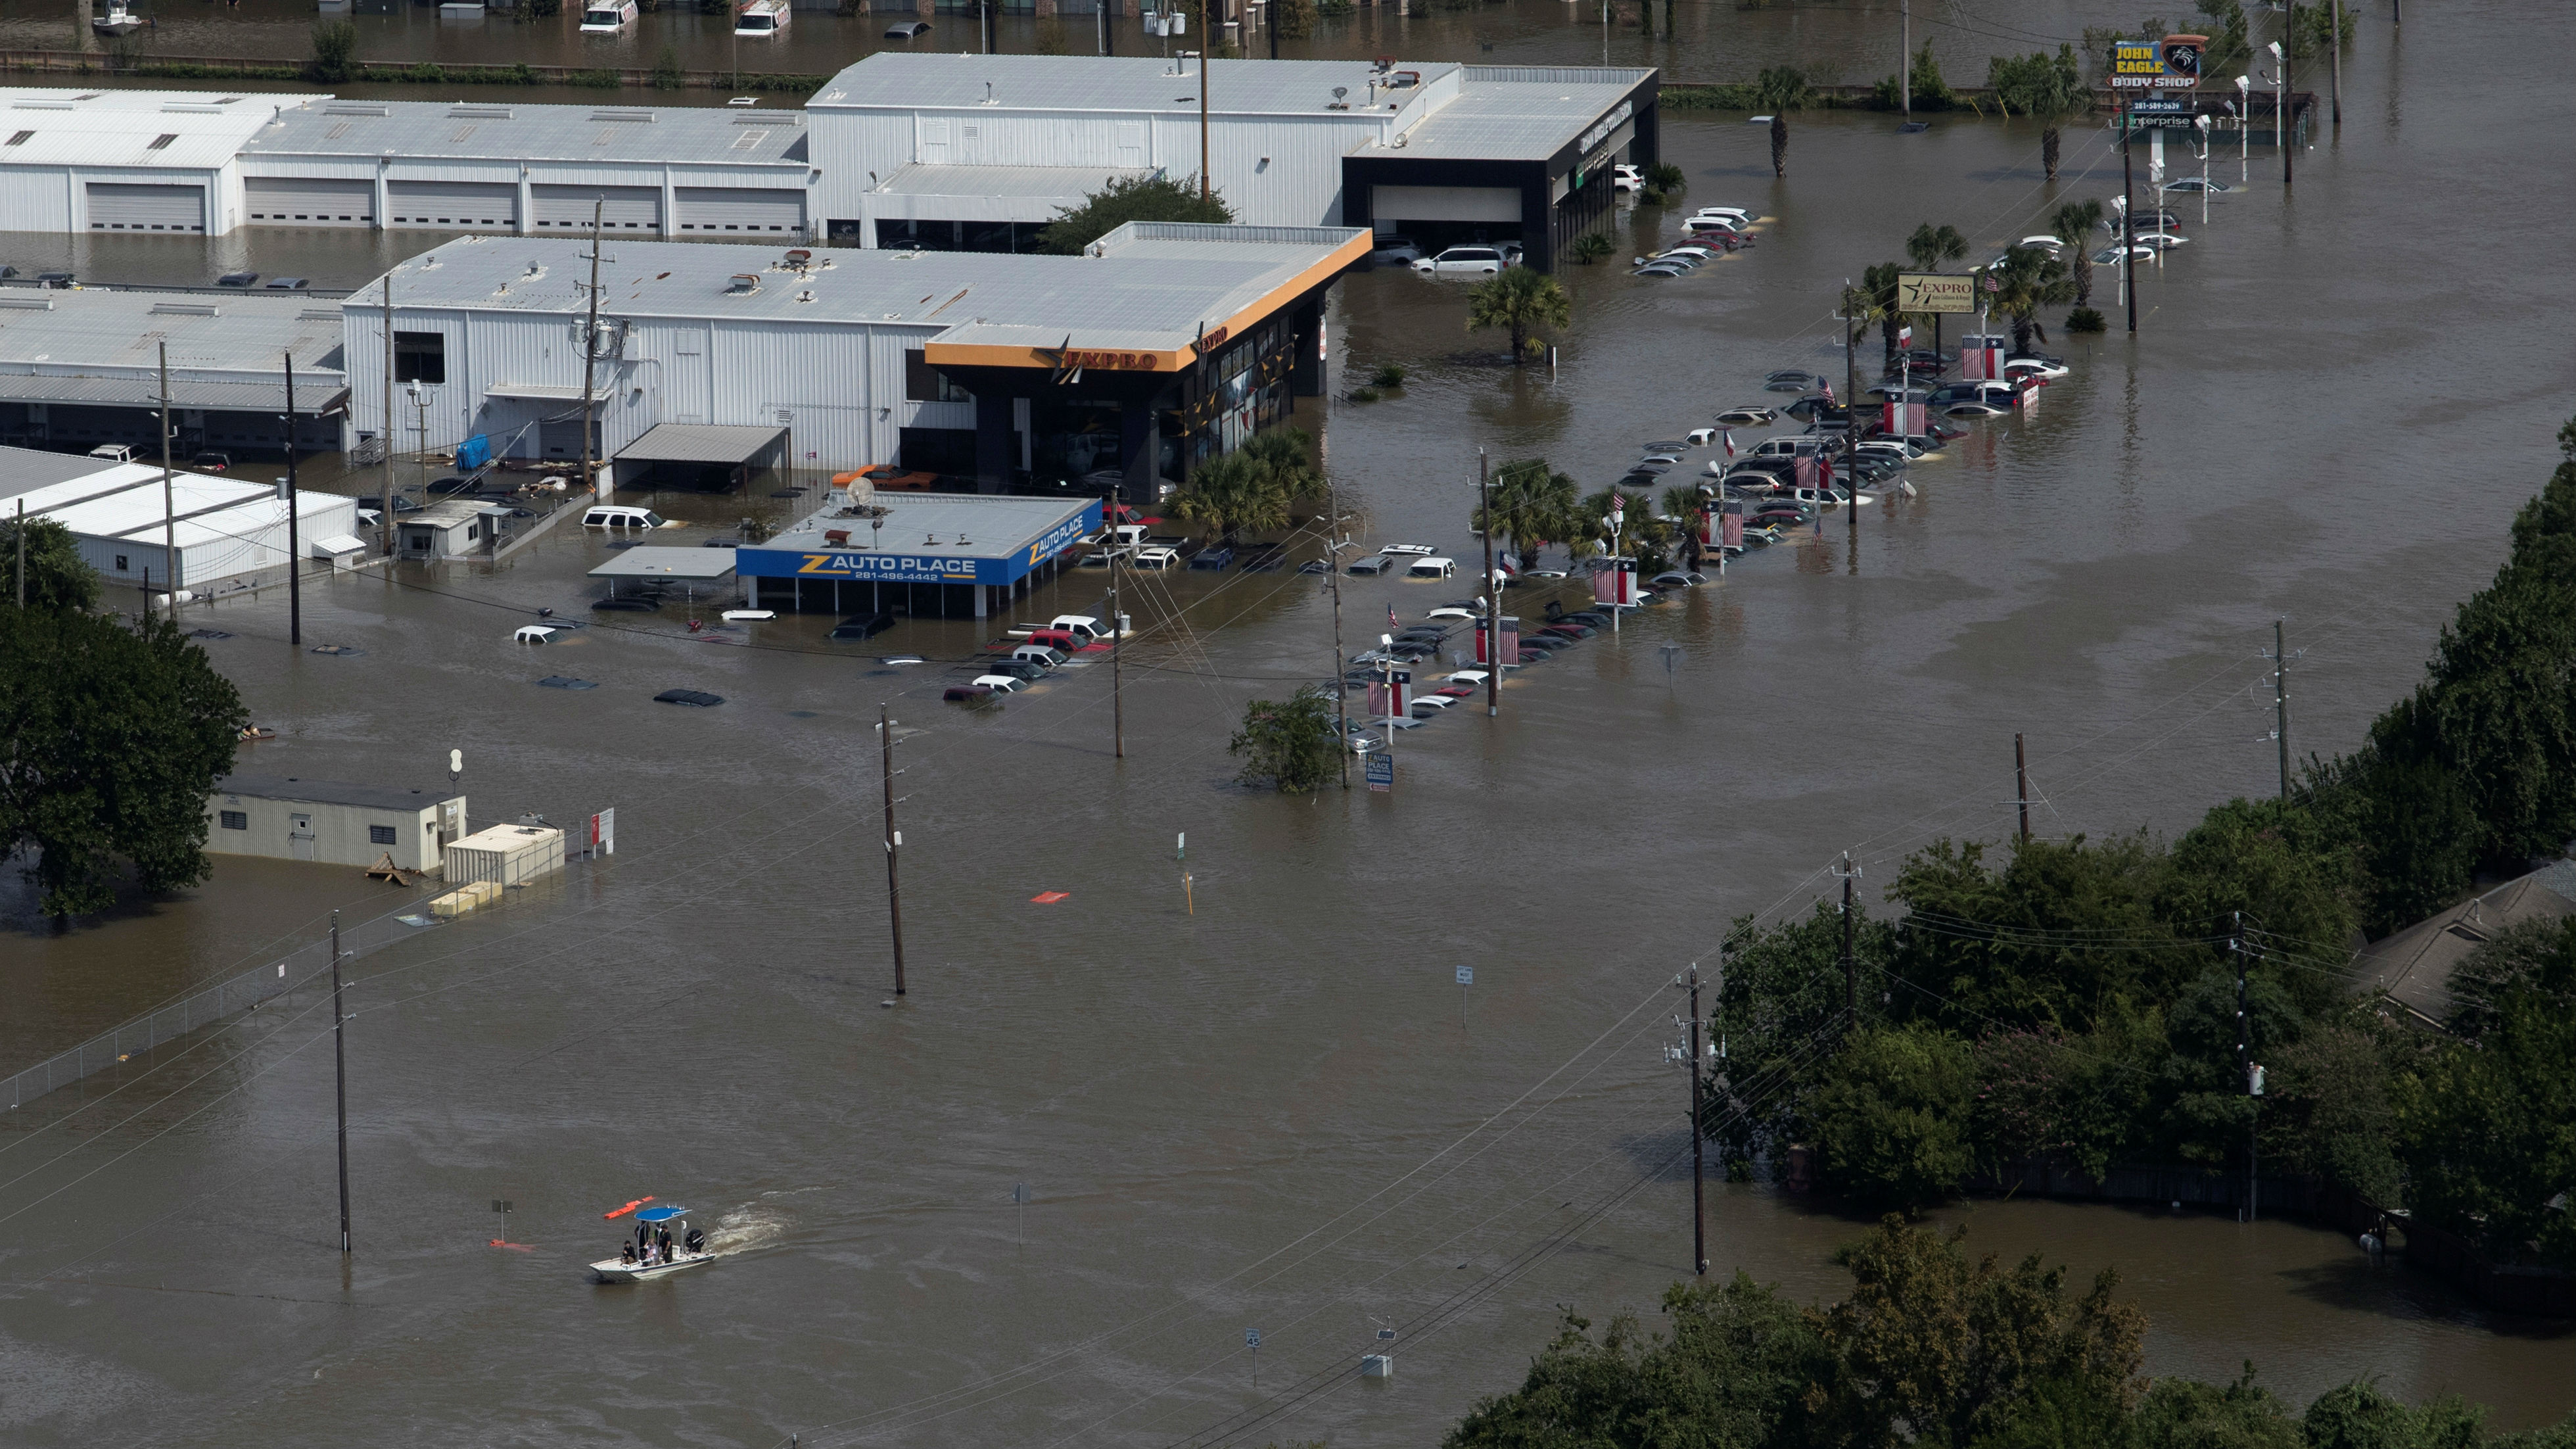 A boat looks for evacuees past businesses left flooded by Tropical Storm Harvey along Highway 6 in West Houston, Texas, U.S. August 30, 2017.